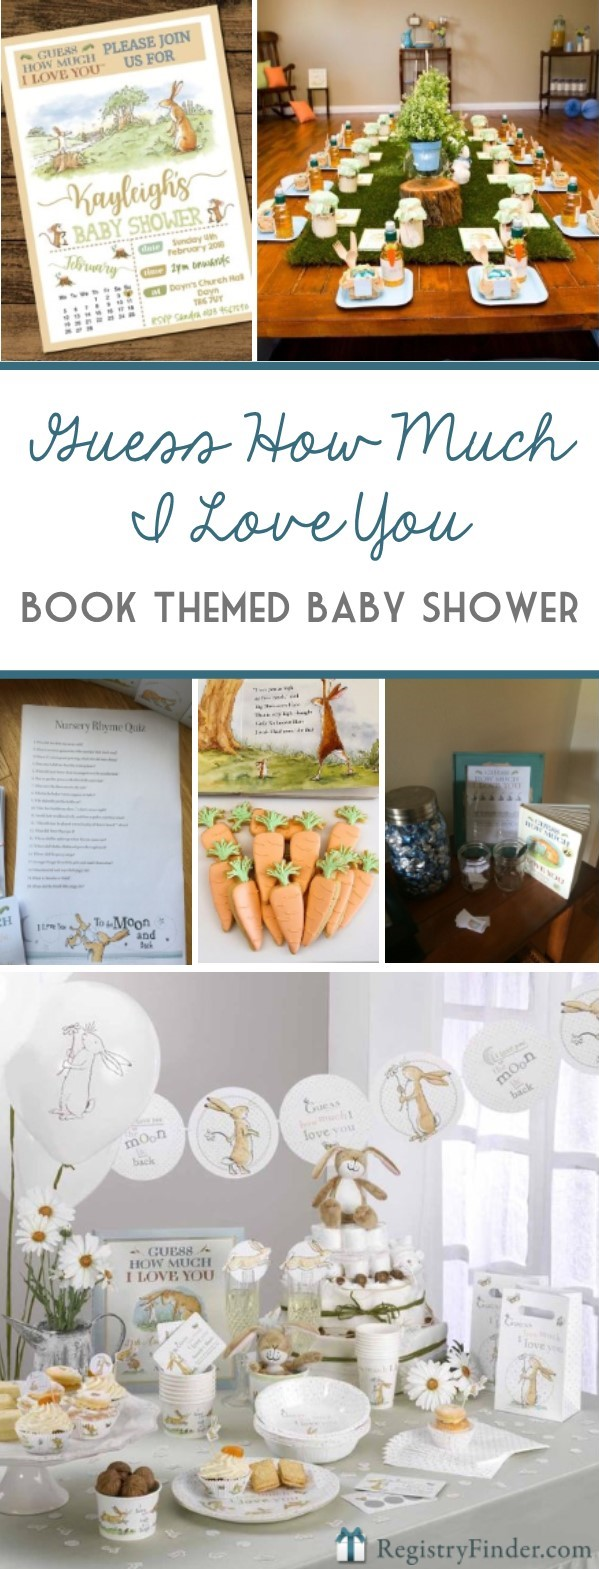 Gender Neutral Book Themed Baby Shower Inspiration